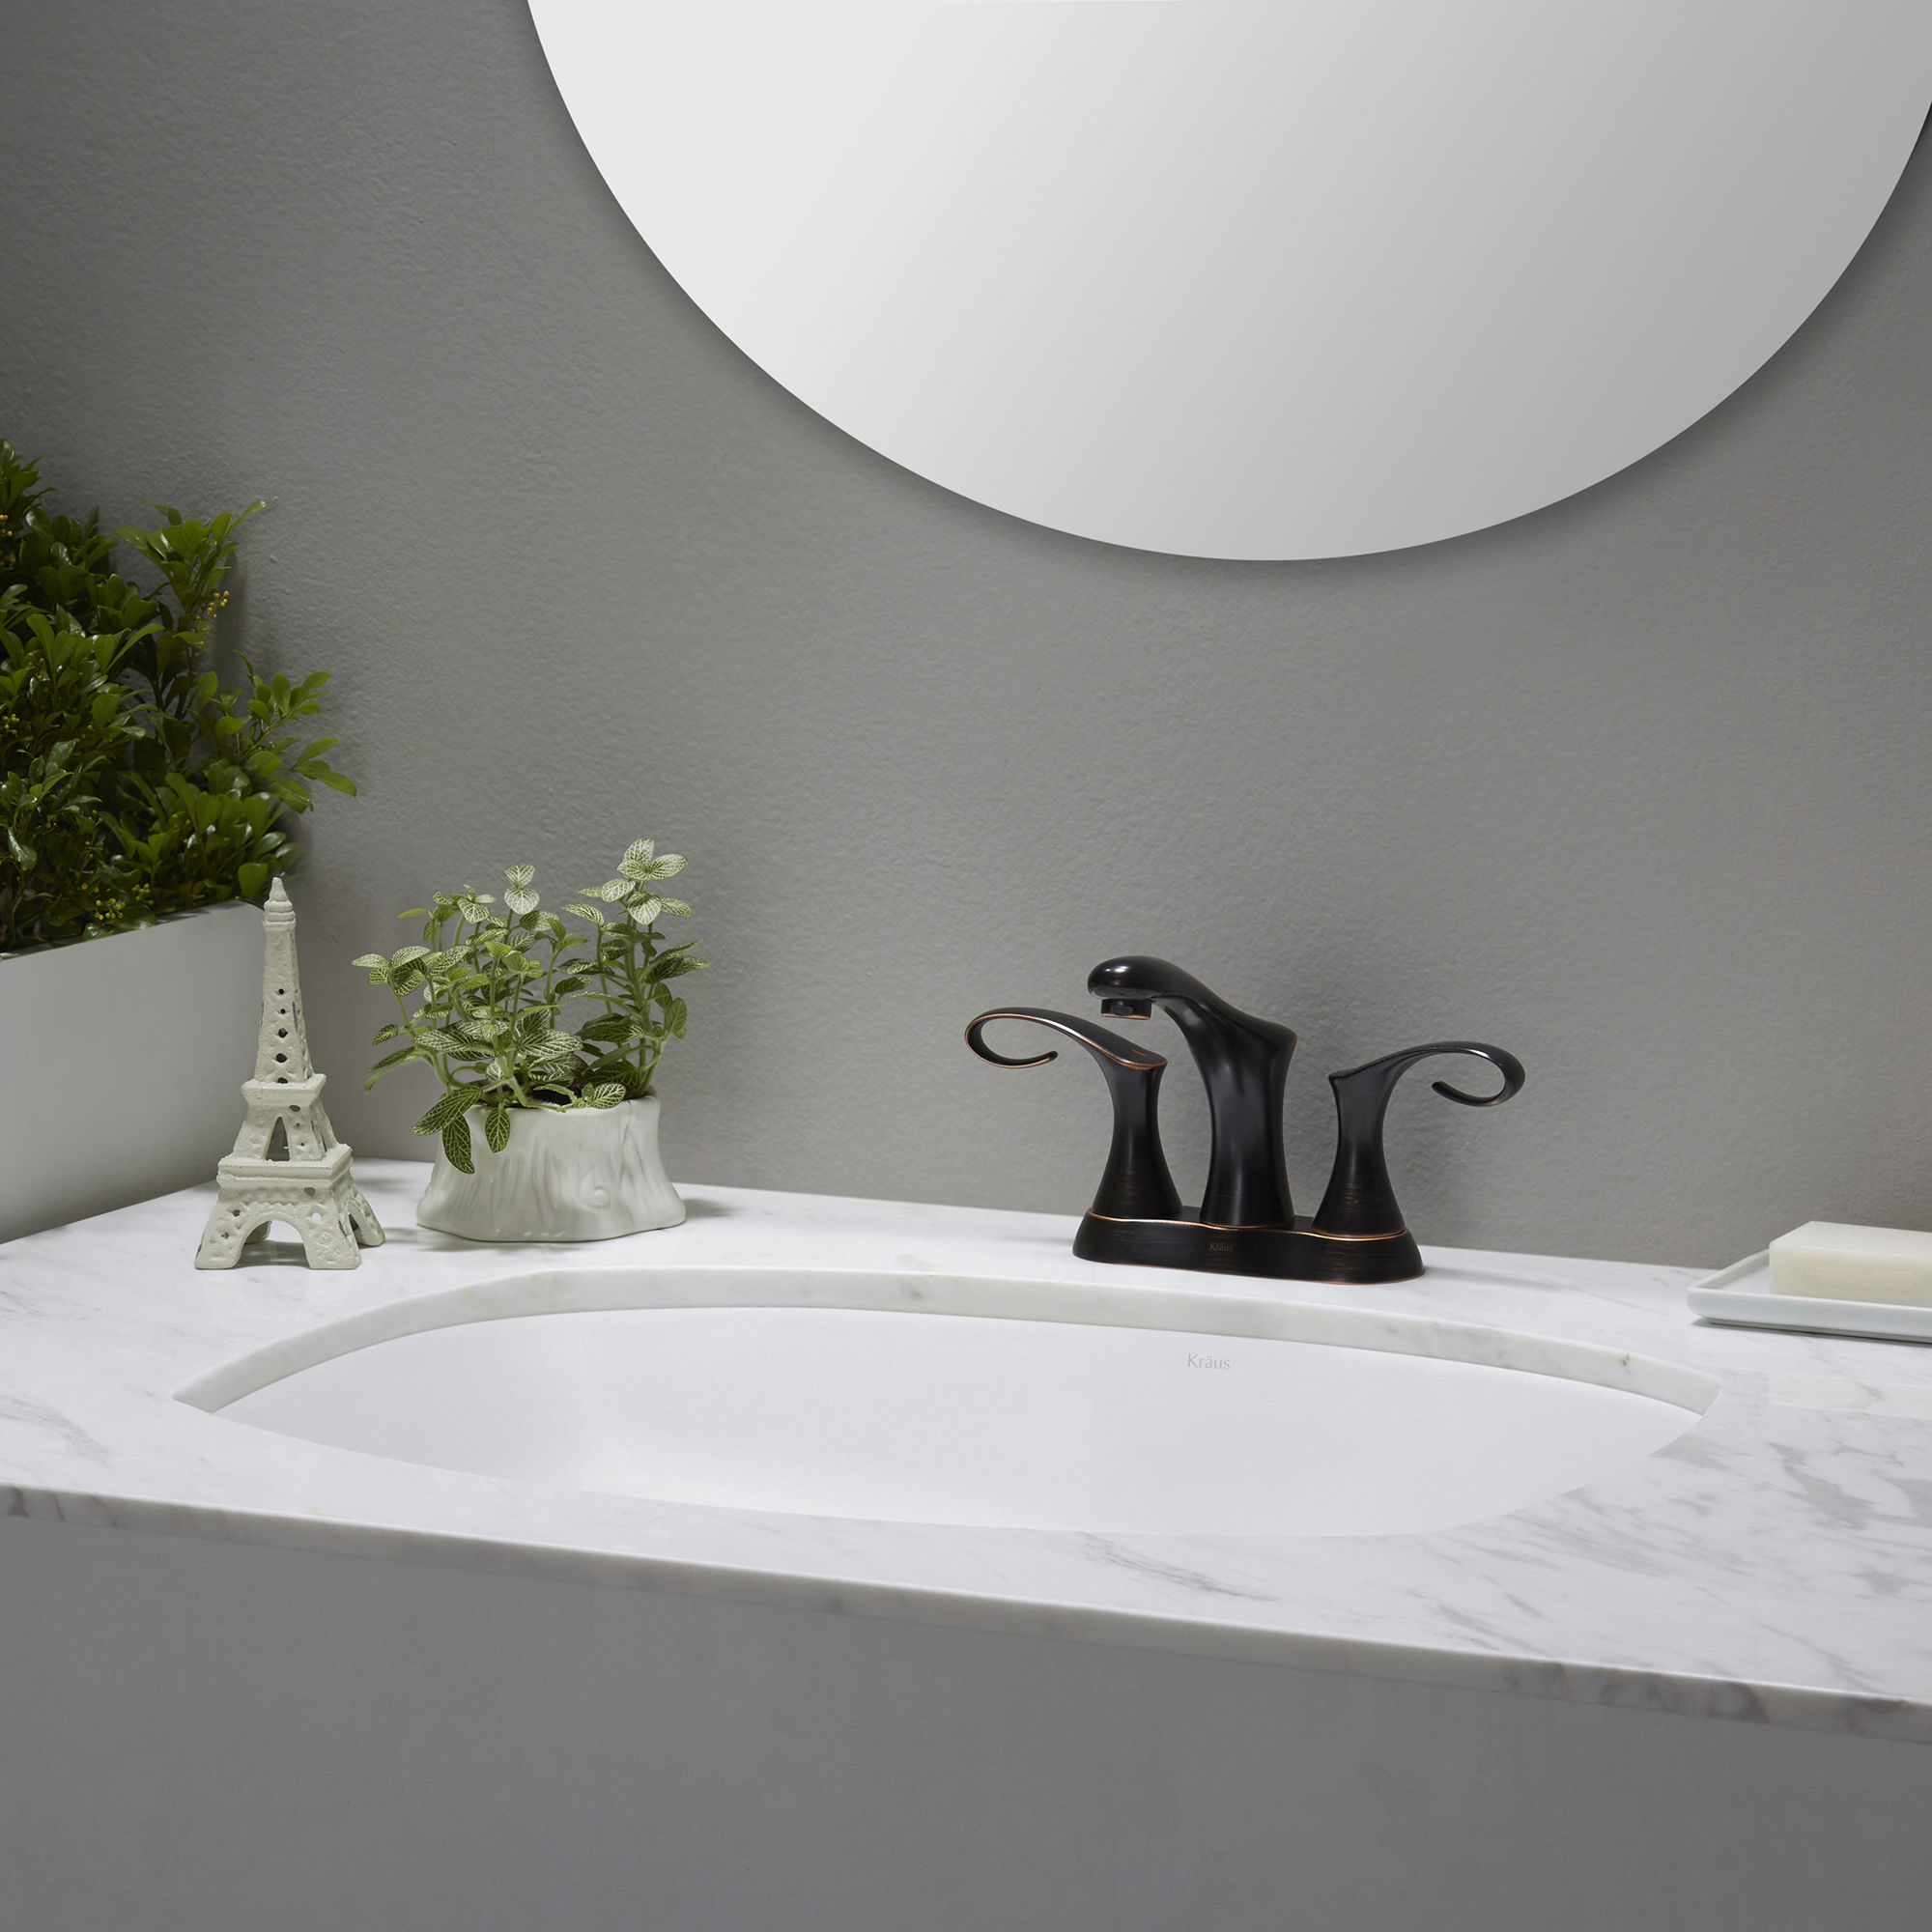 home and bathroom interior a stainless white ideas sink full incredible towels design bathtubs mounted undermount with bathtub vanity steel toilet size of style as floating countertop wash soaking marble hoohs basin in bath door mirrored decorations many also shelves wall fabulous well